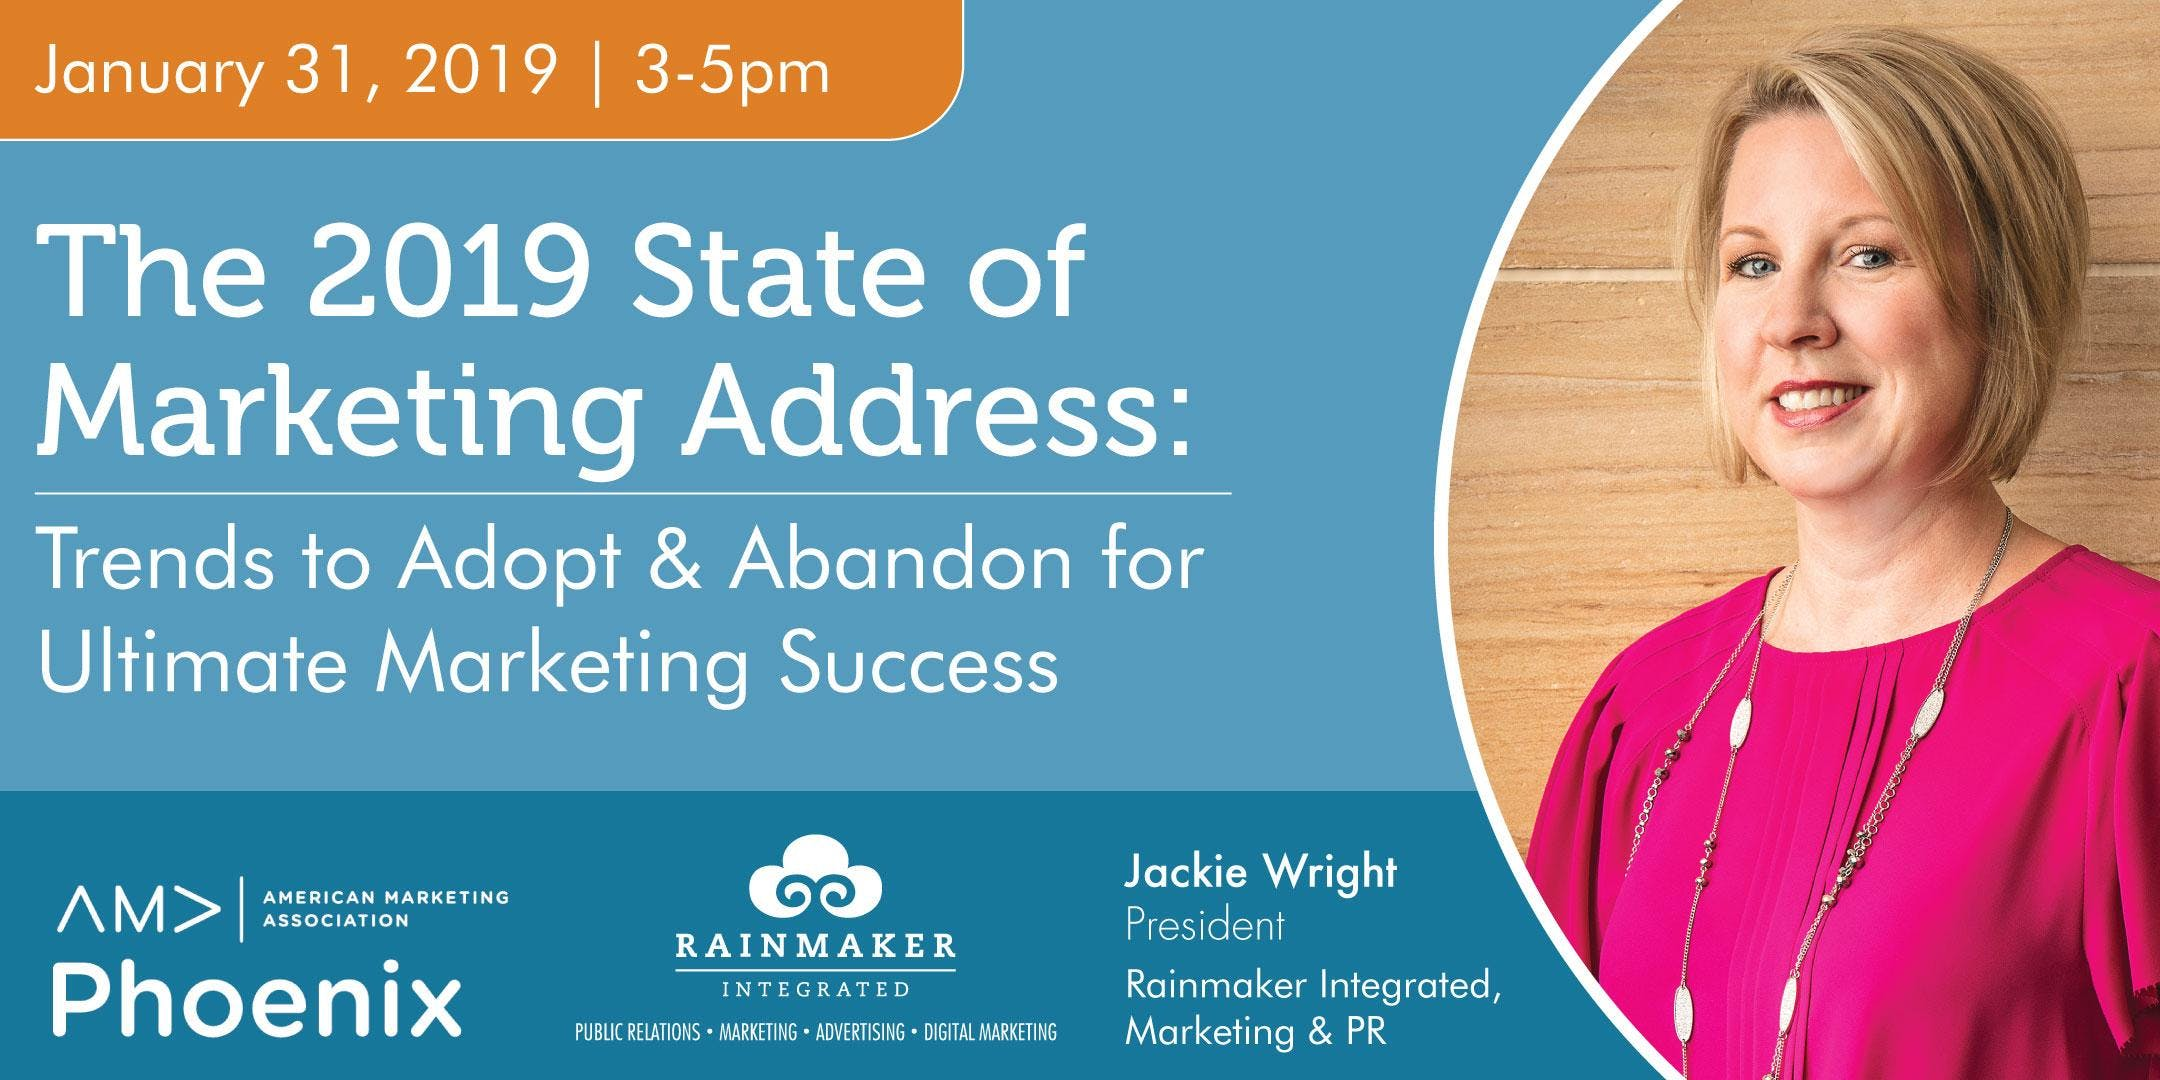 State of Marketing Address 2019: Trends to Adopt & Abandon for Ultimate Marketing Success